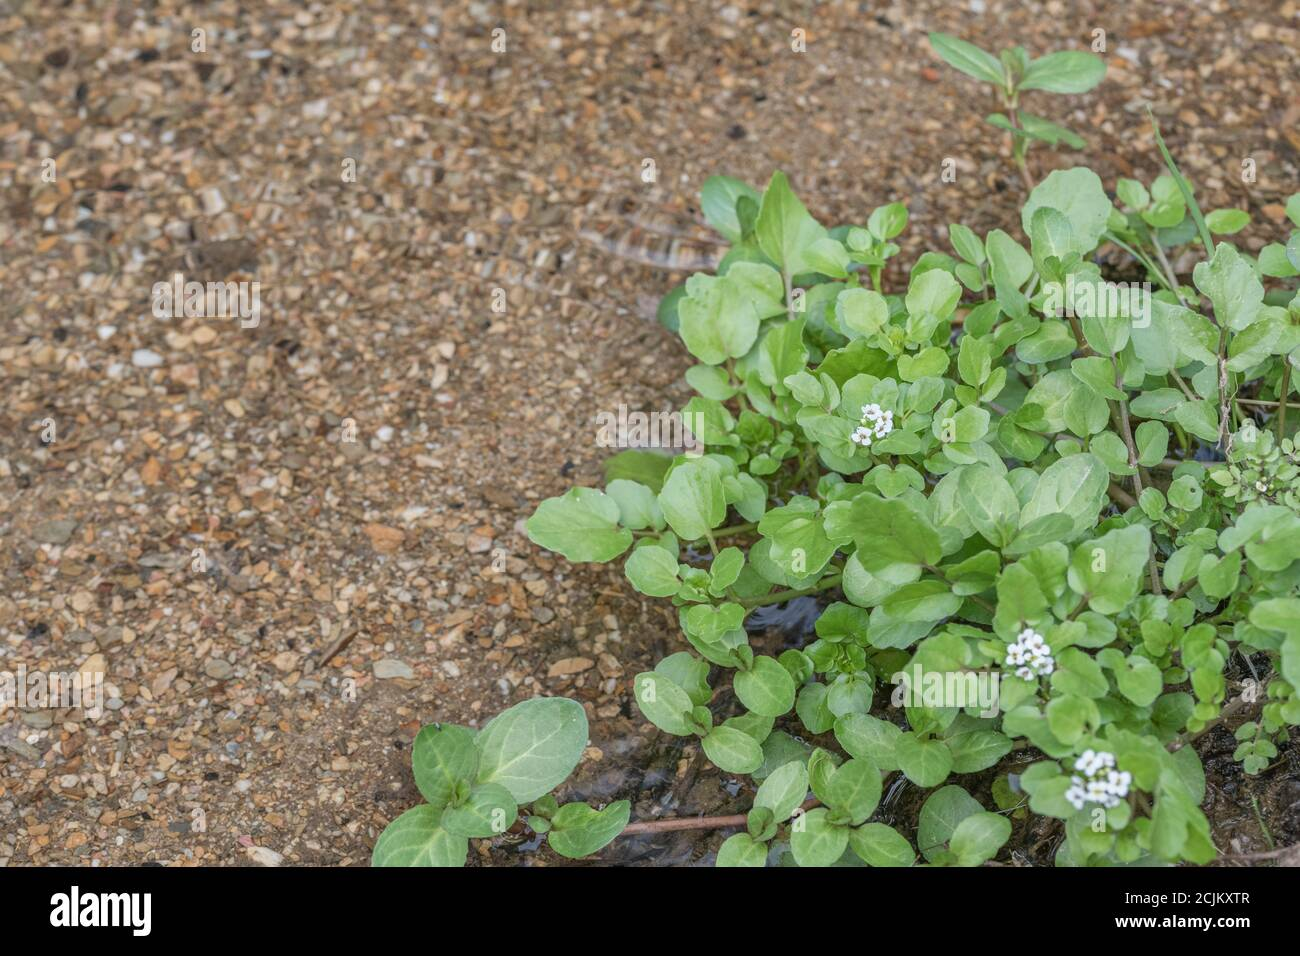 Small patch of flowering wild Watercress / Nasturtium officinale growing wild in freshwater stream. Concept small stream, medicinal plants, wild food. Stock Photo